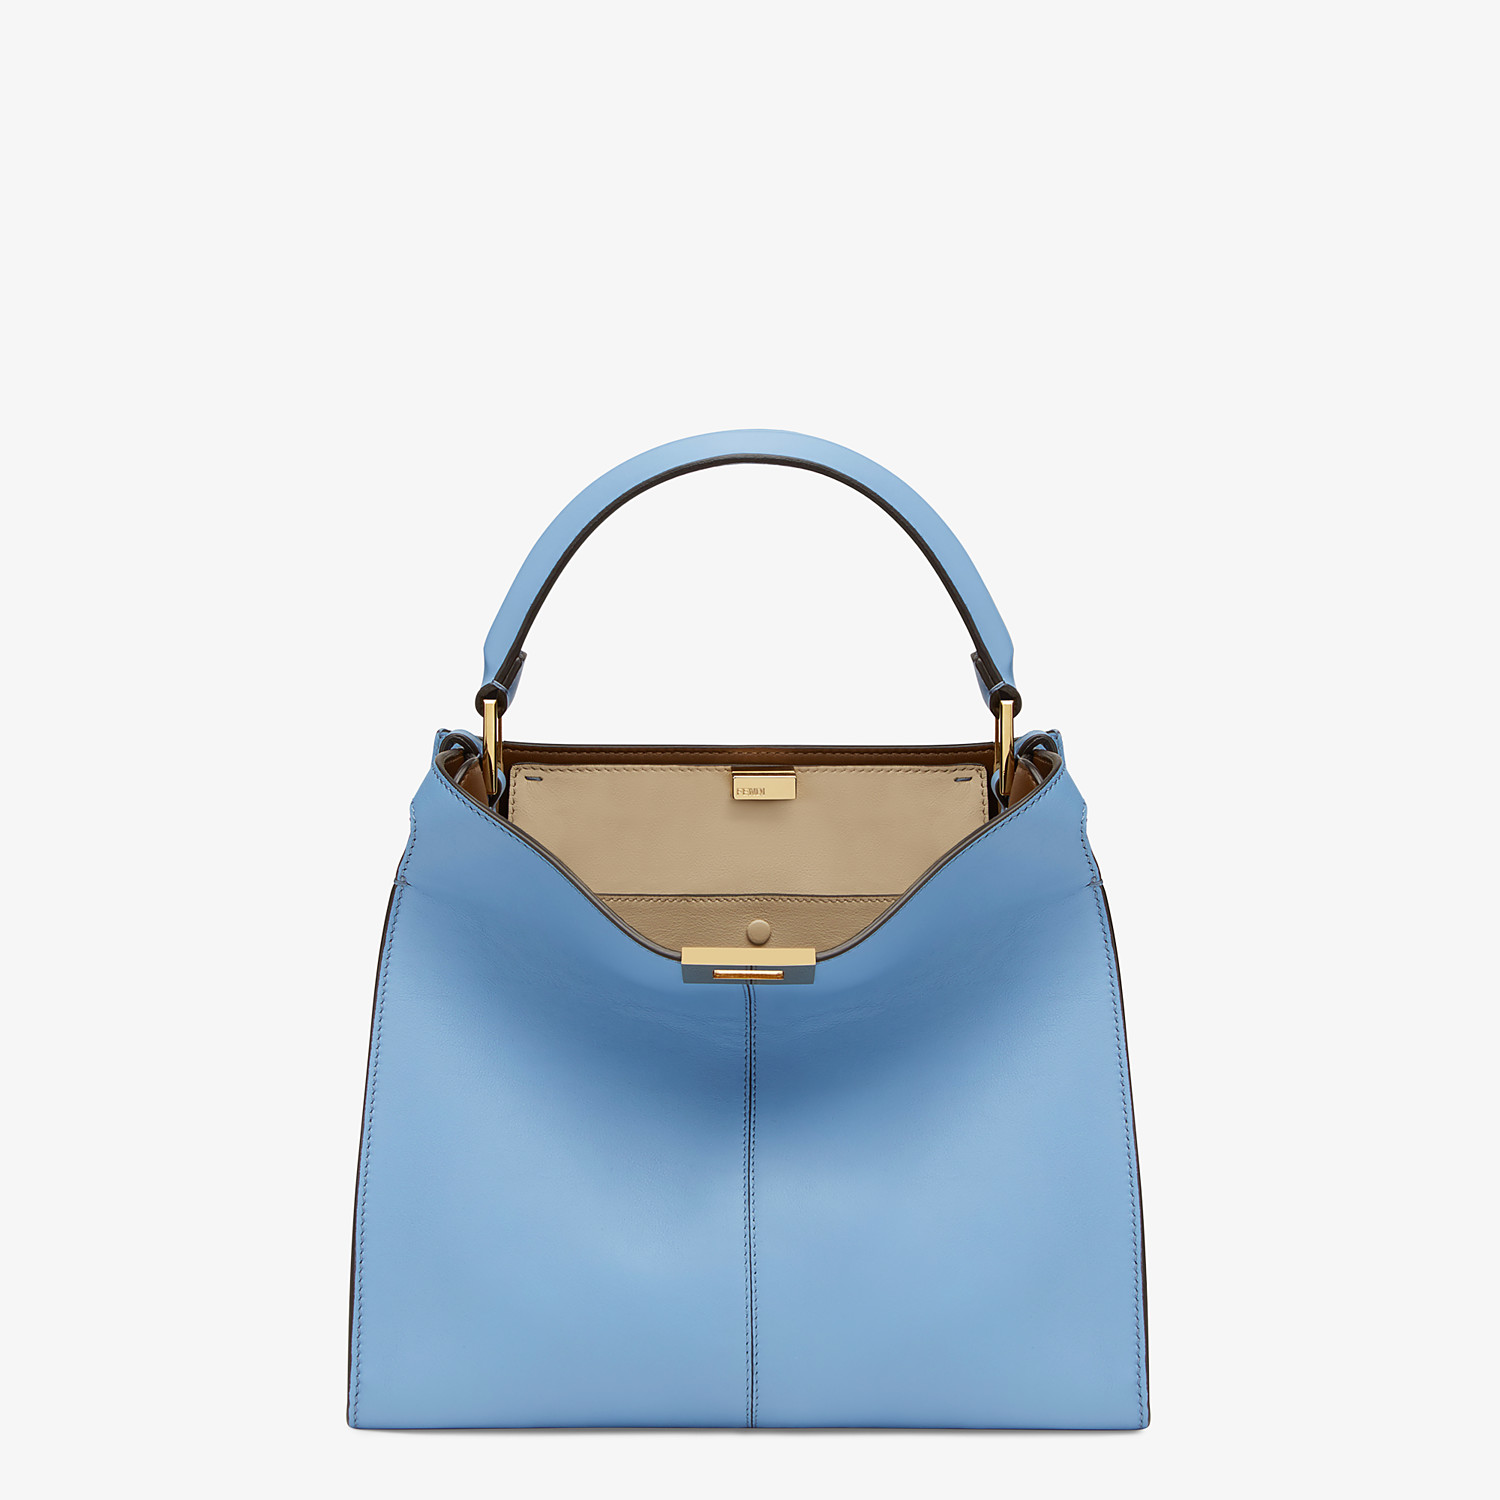 FENDI PEEKABOO X-LITE MEDIUM - Pale blue leather bag - view 3 detail